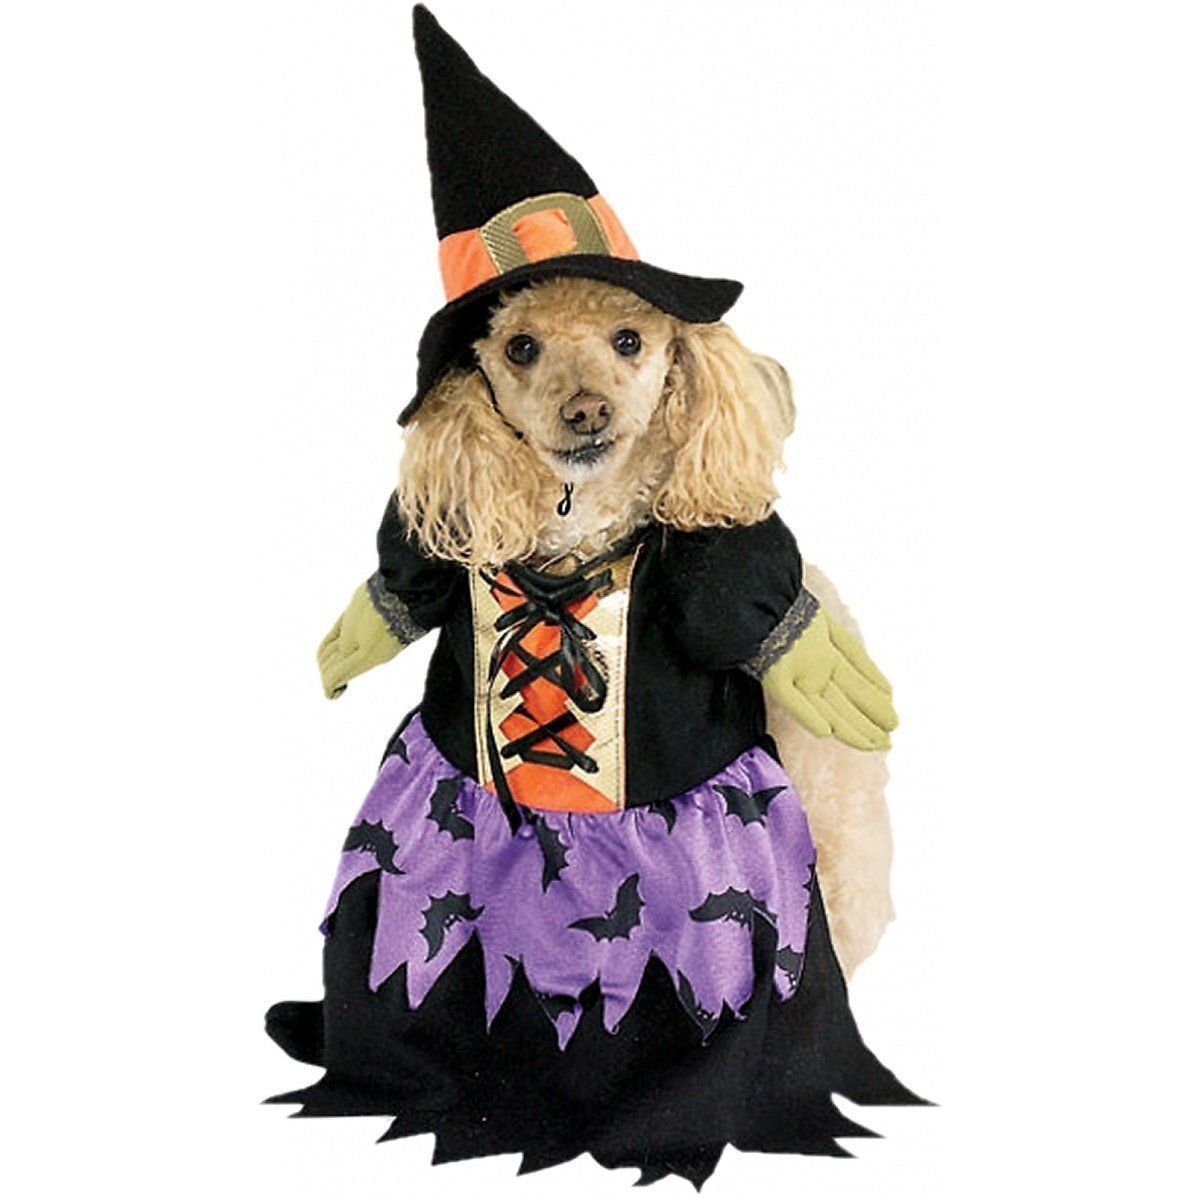 Fashionista Magical Bewitched Purple Witch Pet Dog Costume and Hat by Rubies - M